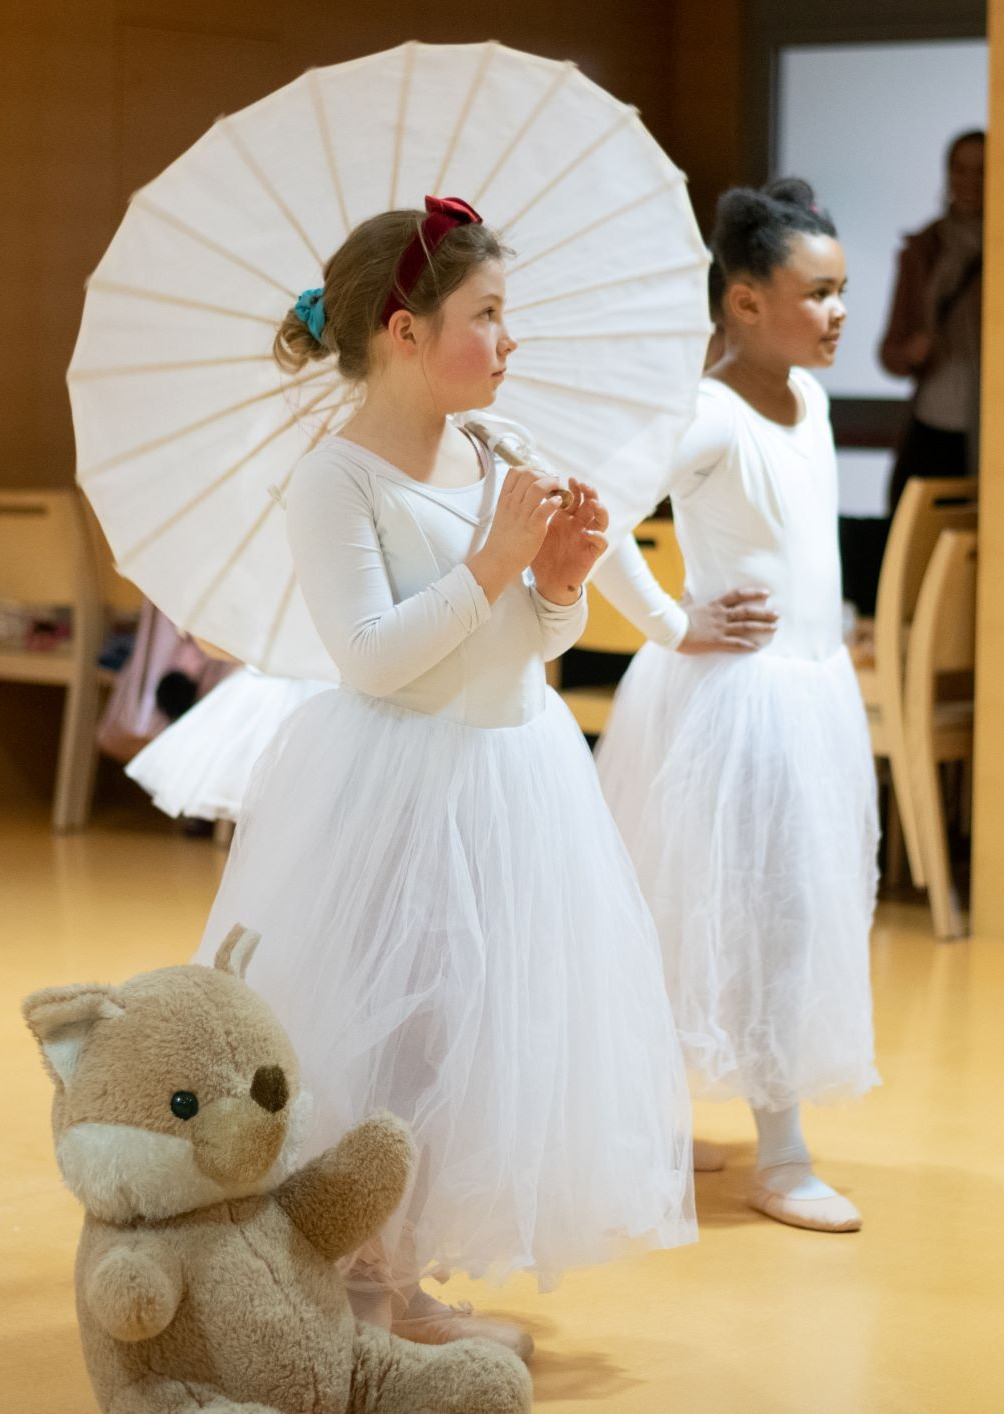 Teddy's Valse 1 - Photo © Daniela Brugger